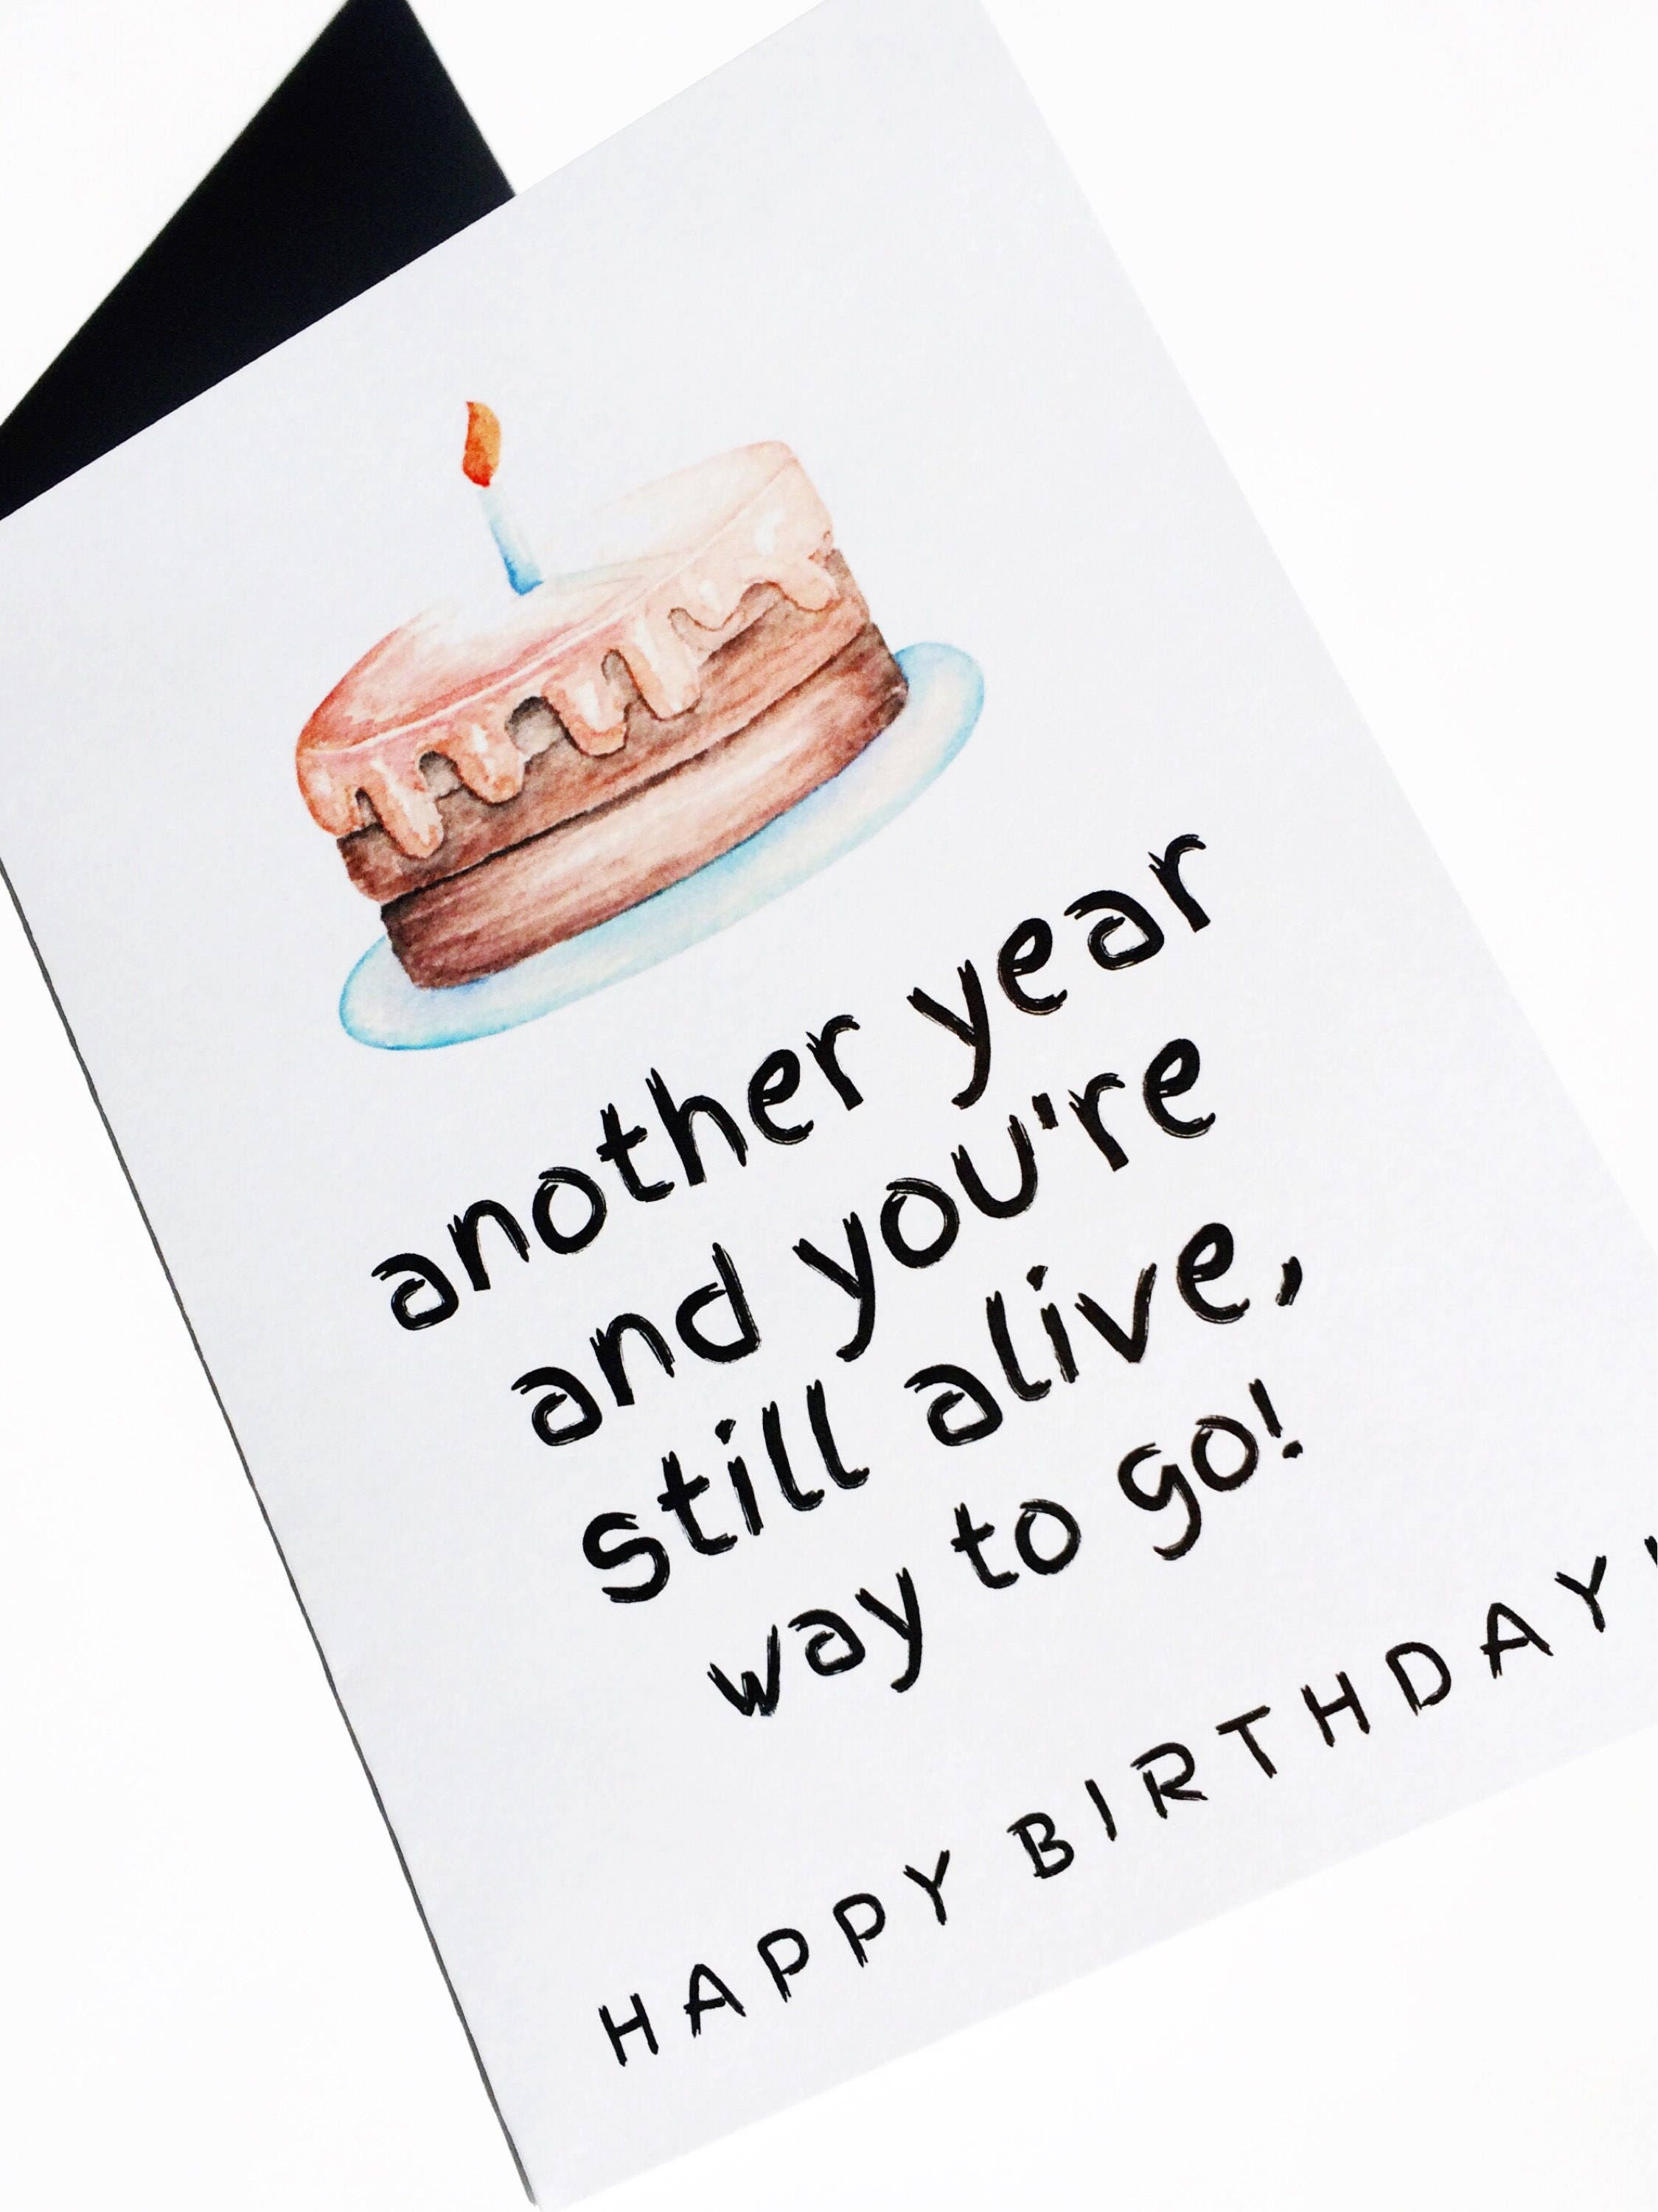 Old people wrinkle funny birthday card alternative birthday card old people wrinkle funny birthday card alternative birthday card secret gift bookmarktalkfo Choice Image